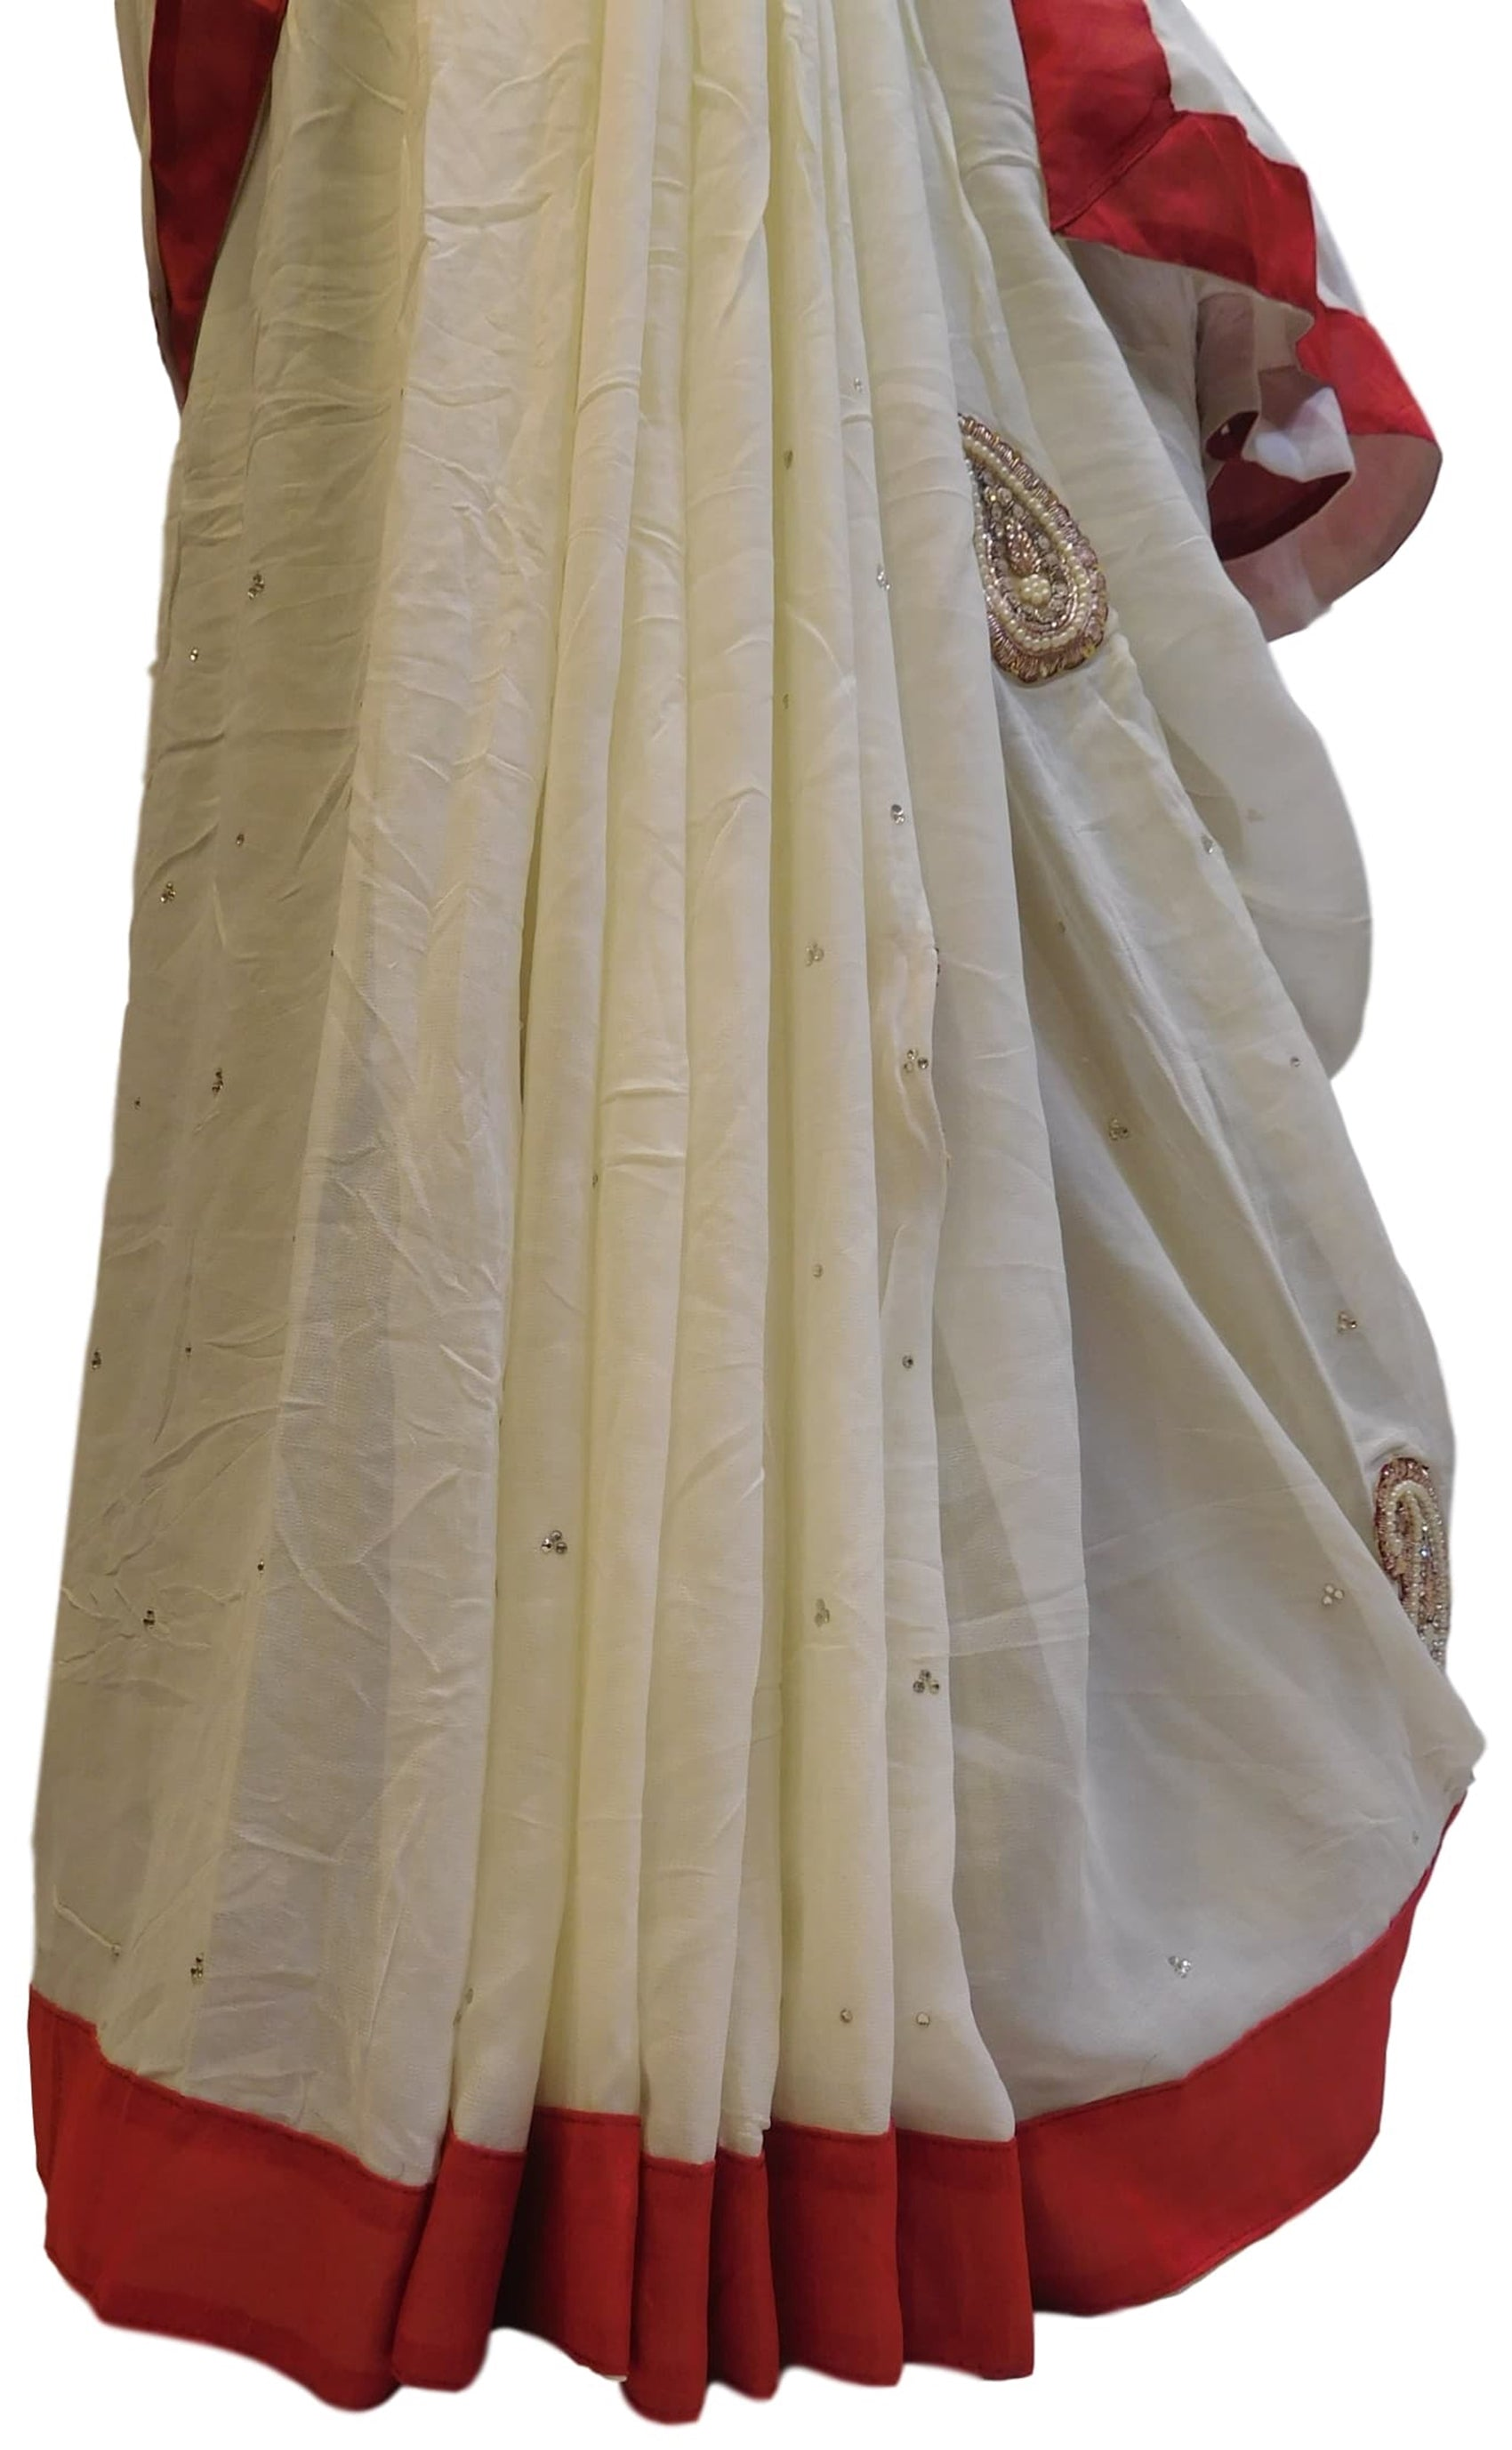 White Designer Georgette (Viscos) Hand Embroidery Pearl Beads Thread Stone Bullion Sequence Work Saree Sari